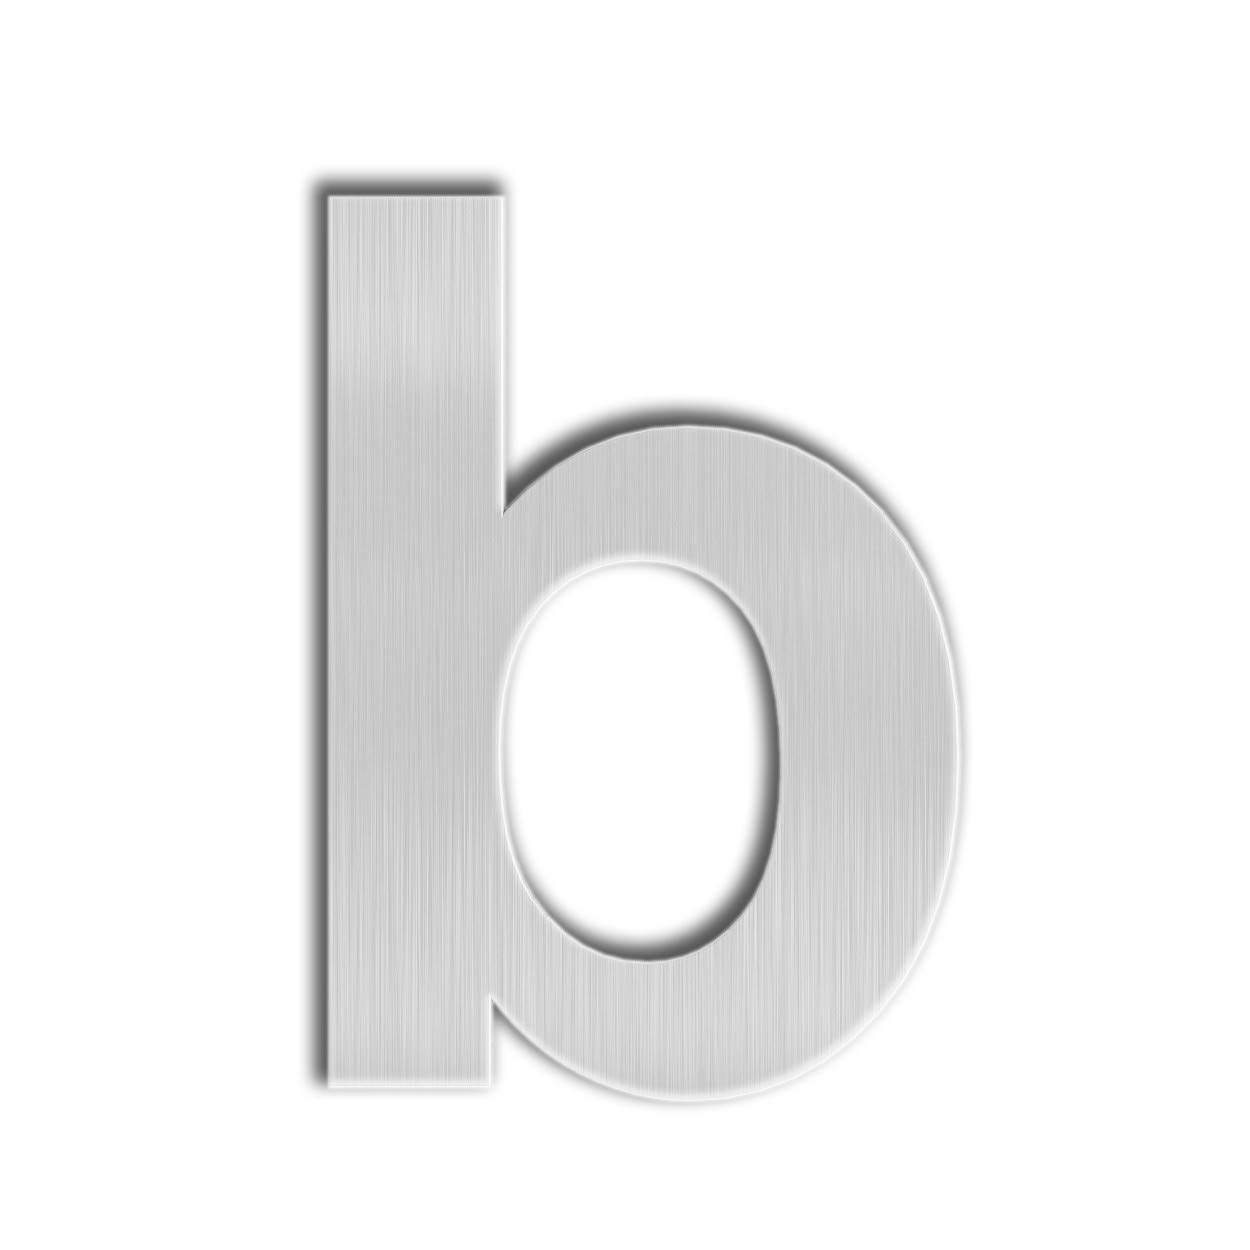 Qt modern house number extra large 10 inch brushed stainless steel letter b floating appearance easy to install and made of solid 304 amazon com